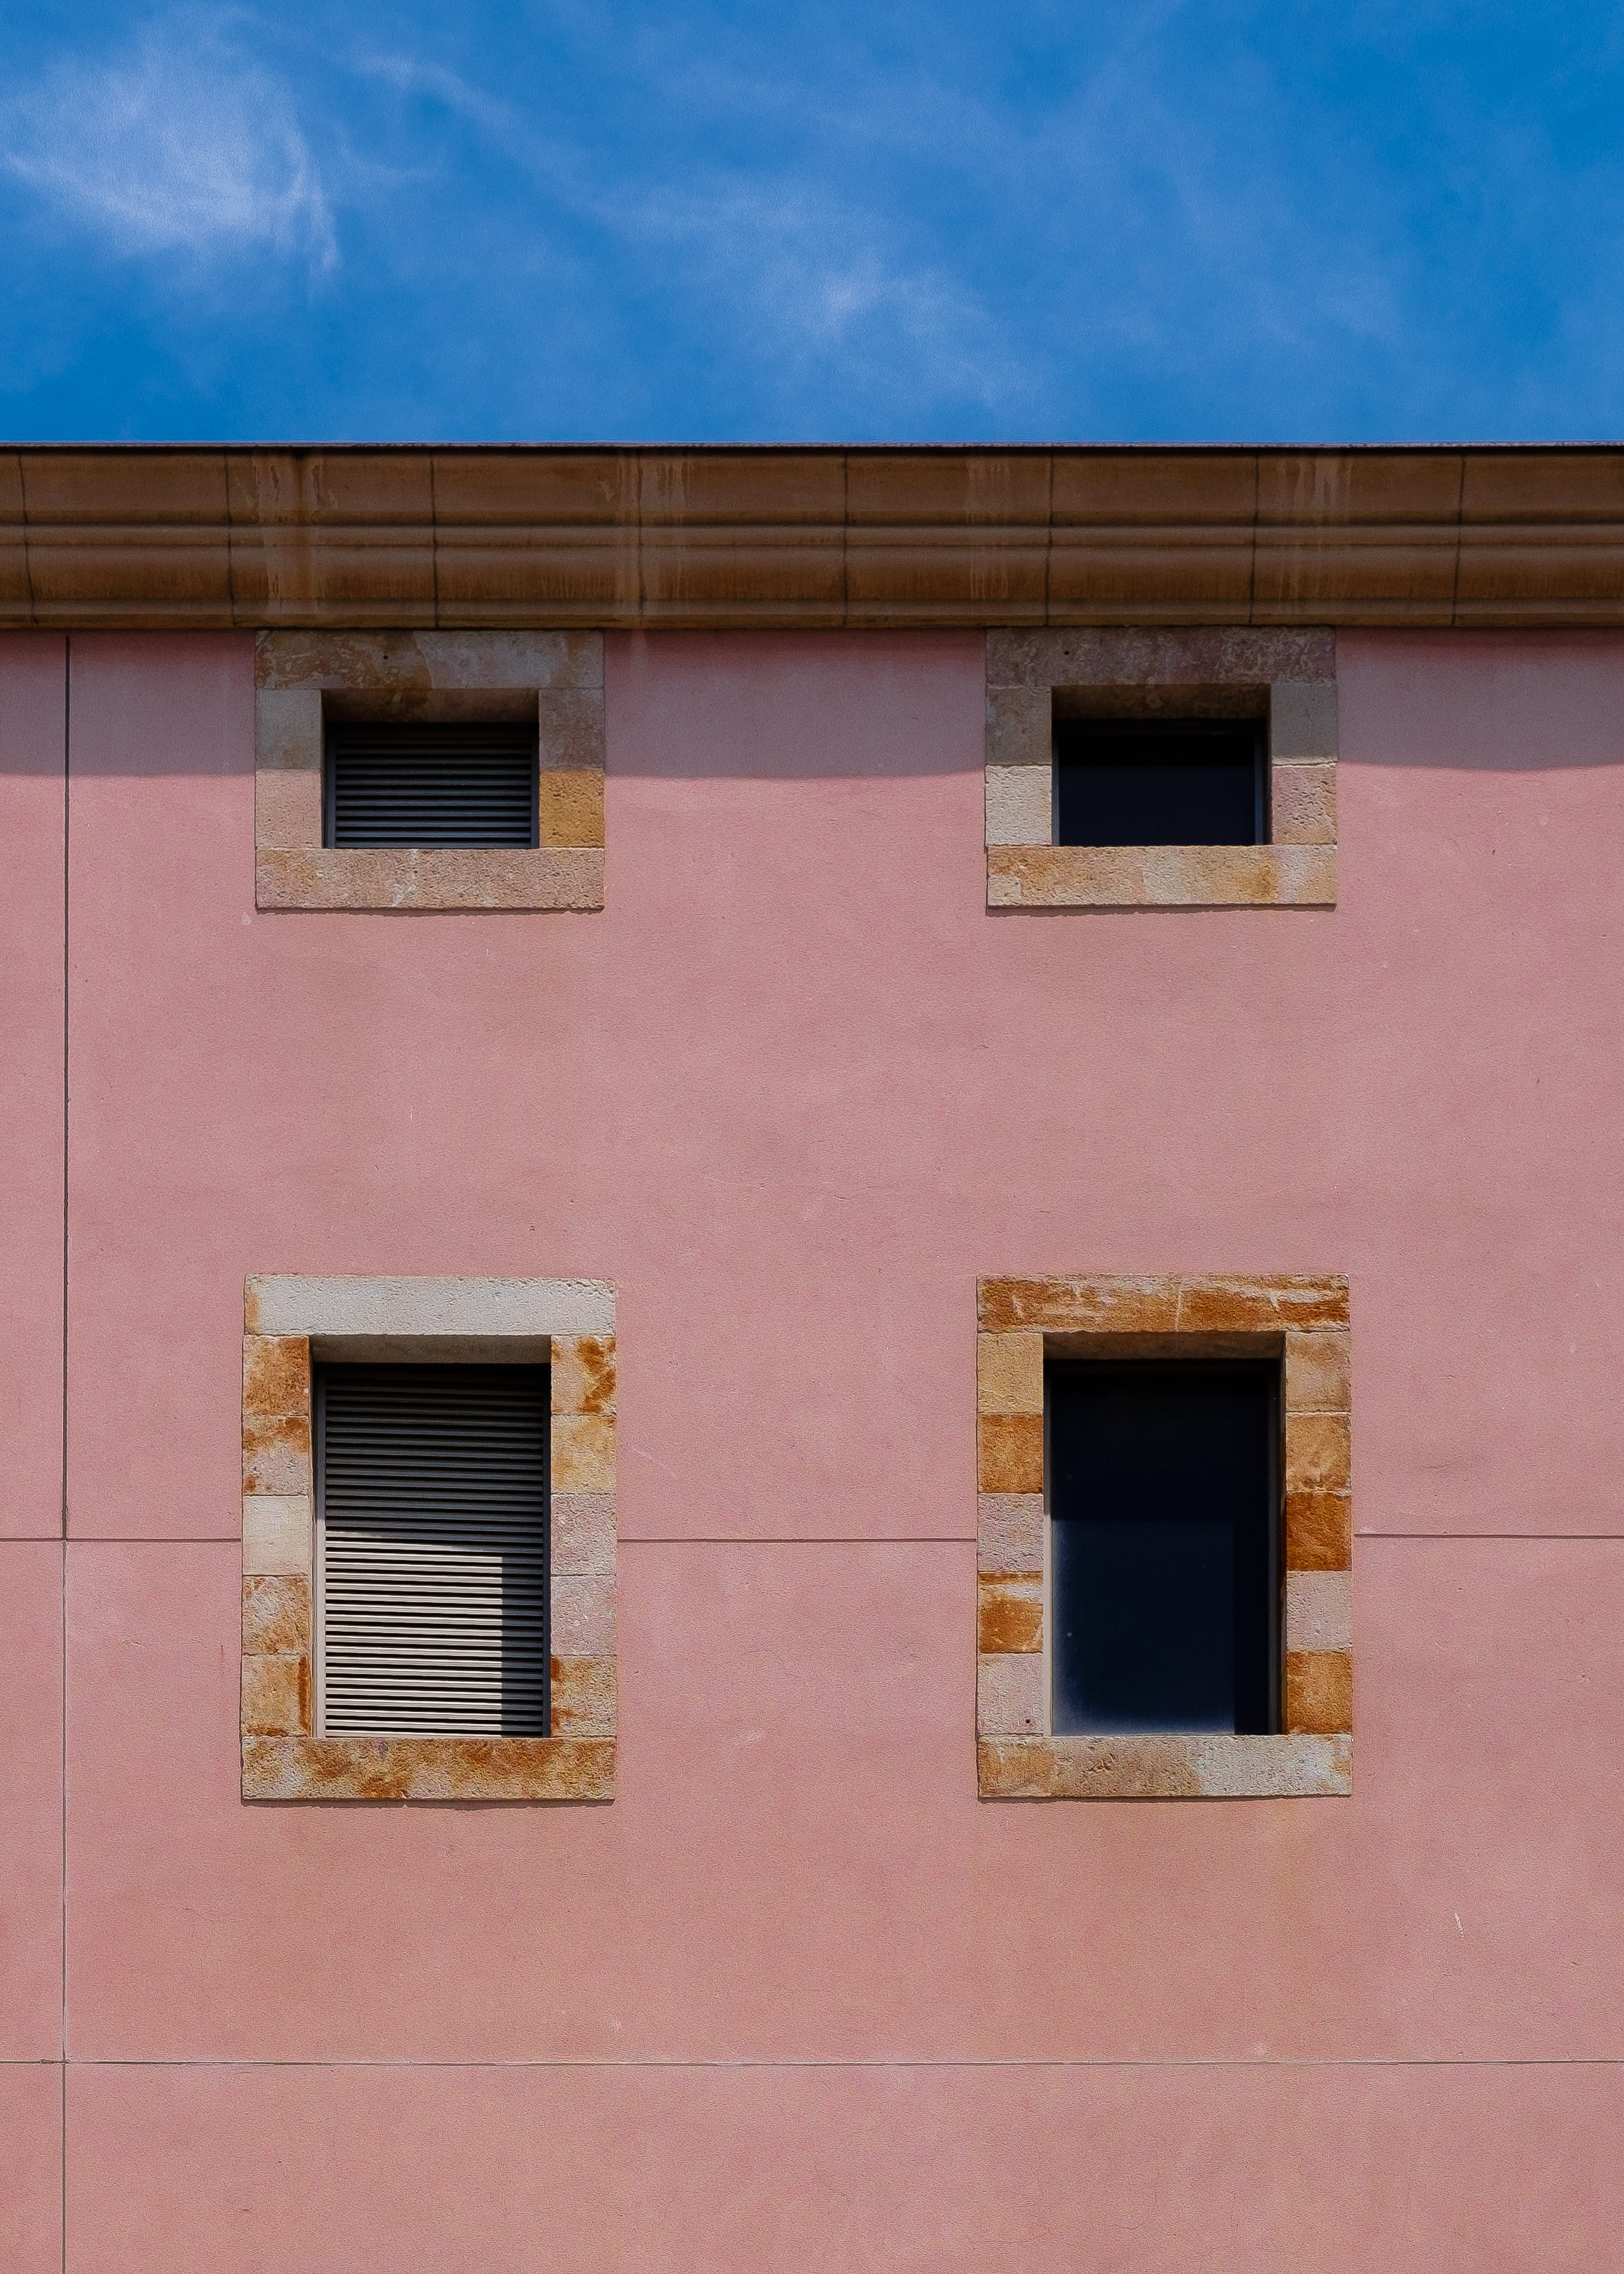 minimalist photography of concrete building with four windows